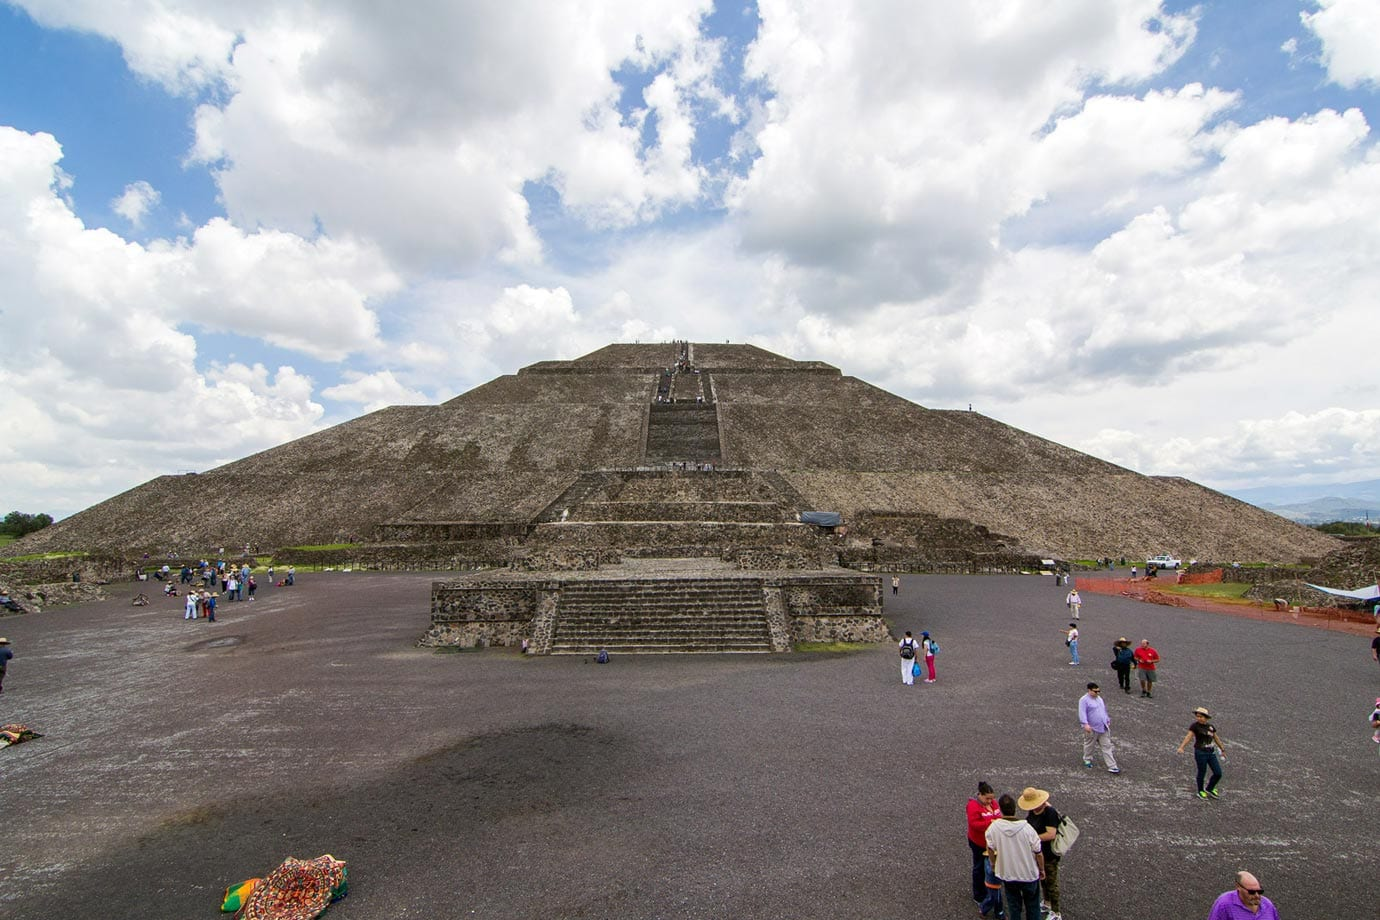 The Pyramid of the Sun is the largest and most impressive in Teotihuacan and it is the third largest pyramid in the world